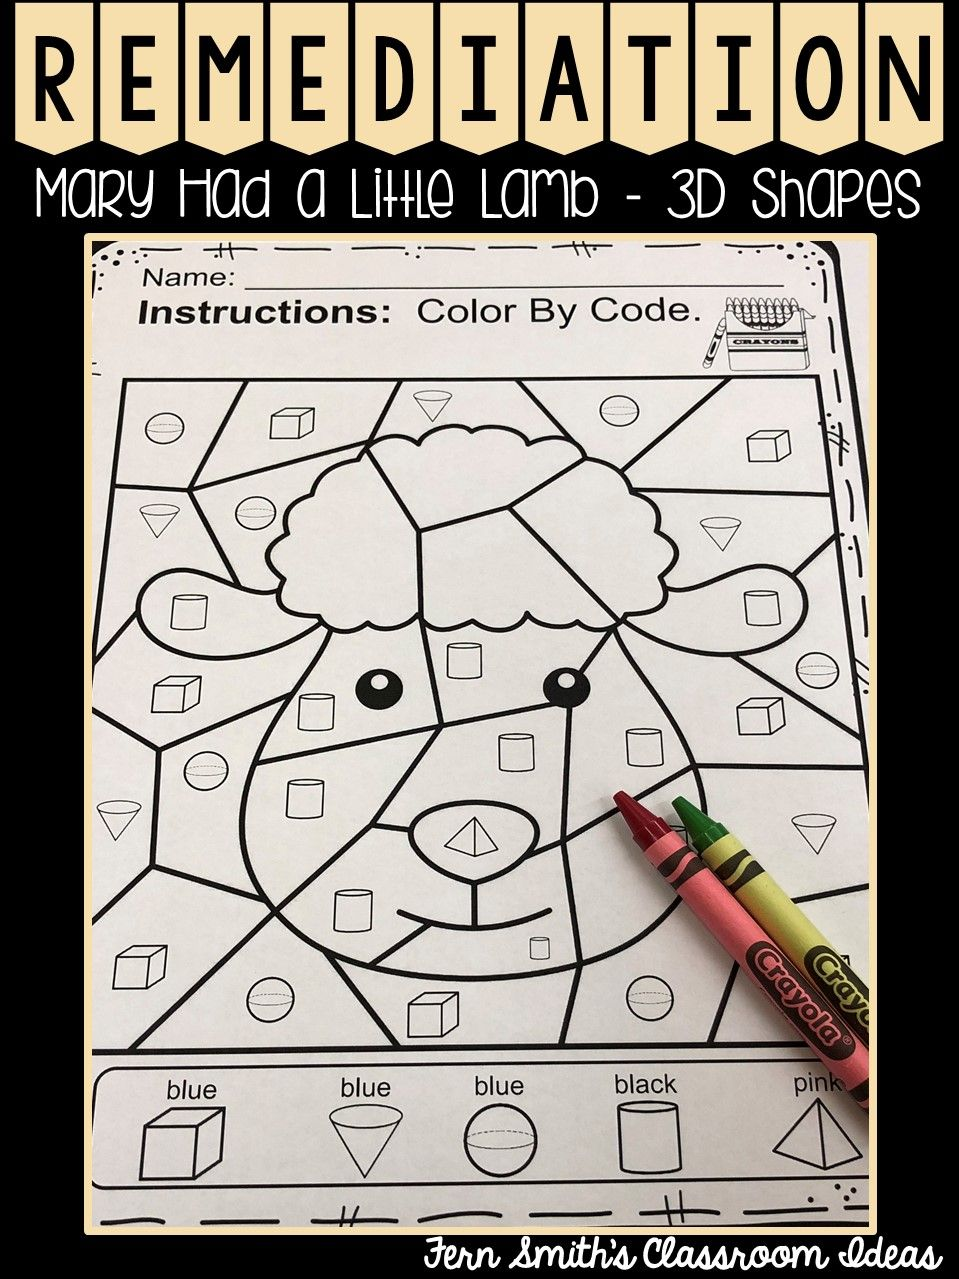 Color By Code For Math Remediation Basic 3d Shapes Mary Had A Little Lamb If You Are Looking Shapes Worksheets Shapes Worksheet Kindergarten Math Remediation [ 1279 x 959 Pixel ]